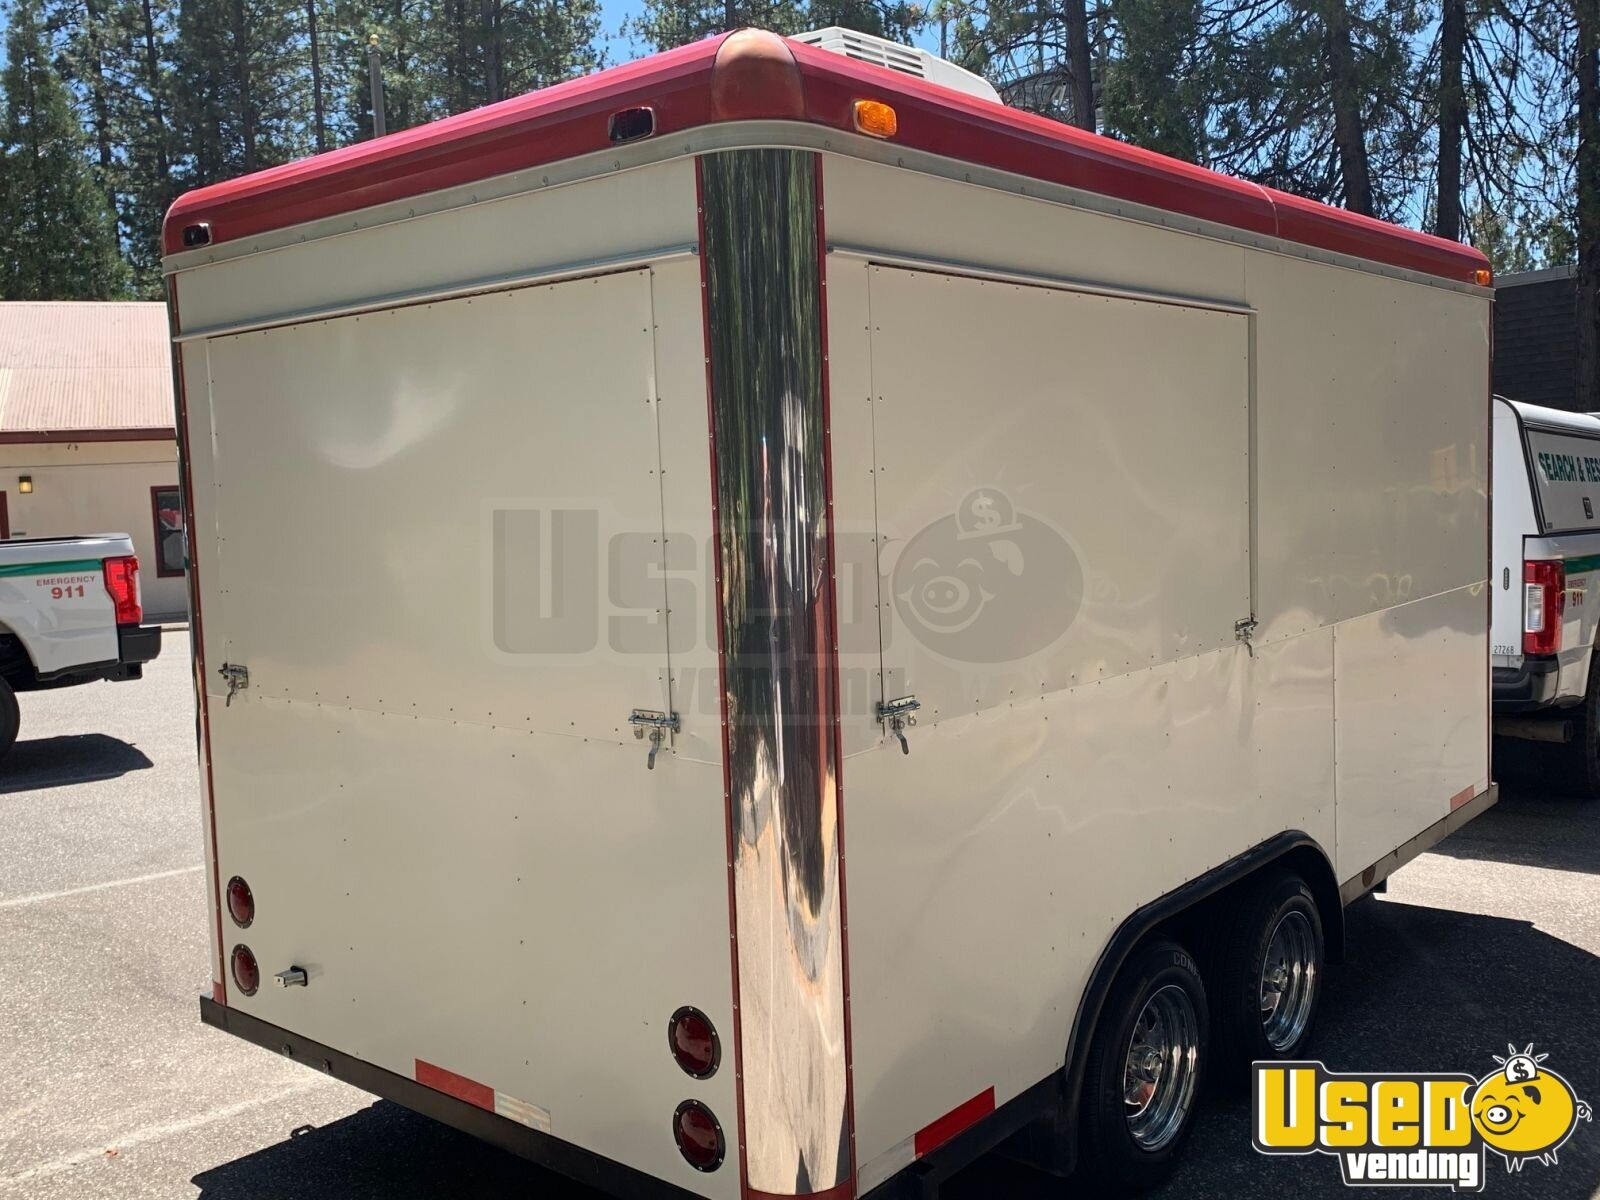 2008 Sanchez Trailers 7x14 All-purpose Food Trailer Stainless Steel Wall Covers California for Sale - 5